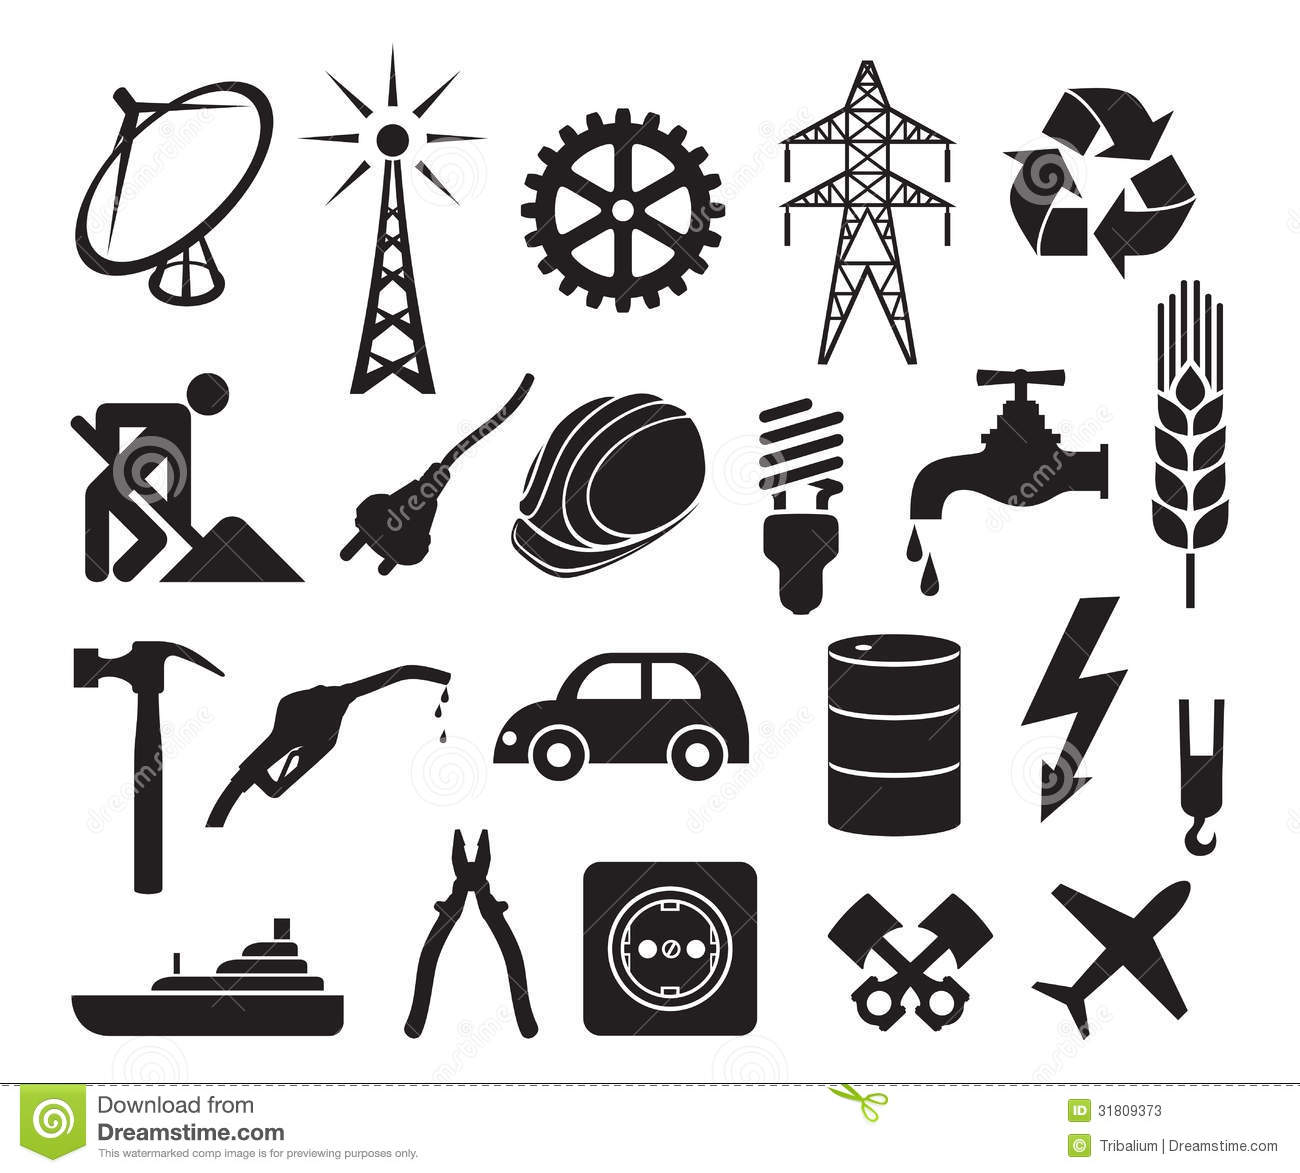 Plug Power Stock Quote: Industry Icons Collection Stock Photos